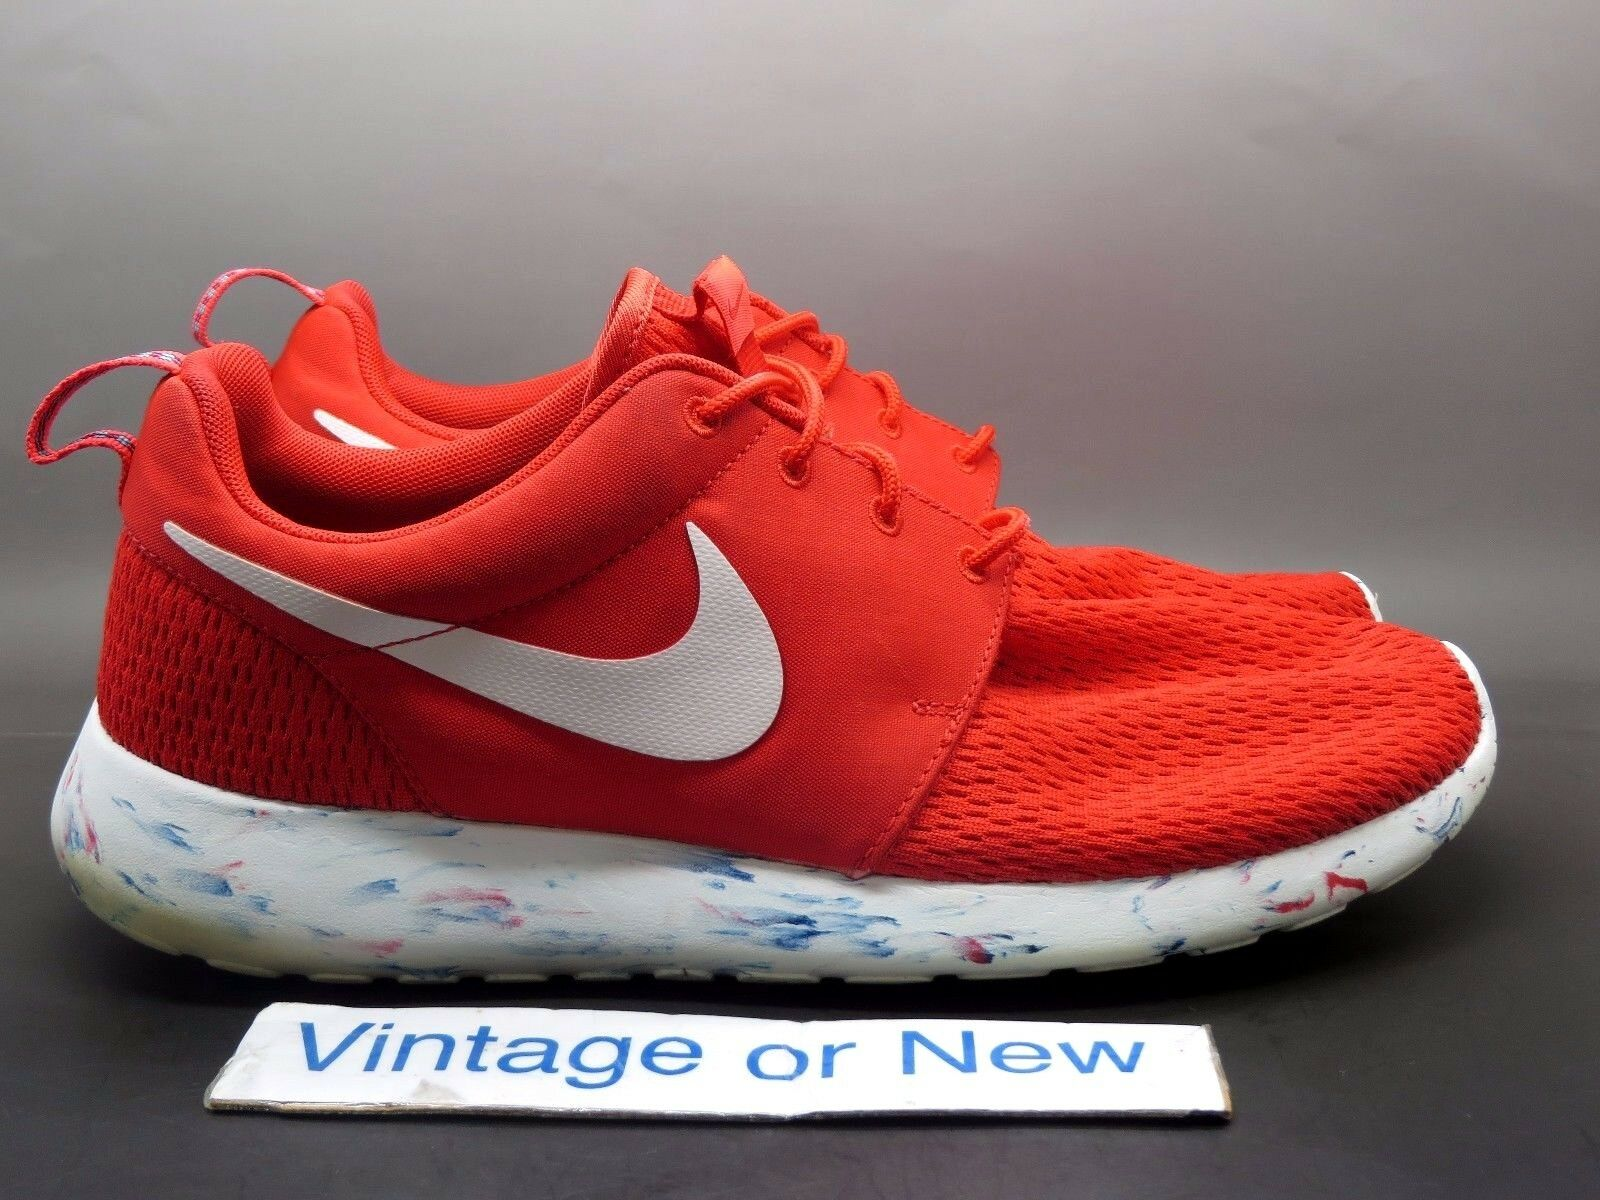 cheaper 6ea5a 221f8 Men s Nike Roshe Roshe Roshe Run Marble Challenge Red Running Shoes  669985-600 sz 9 b8c4b6